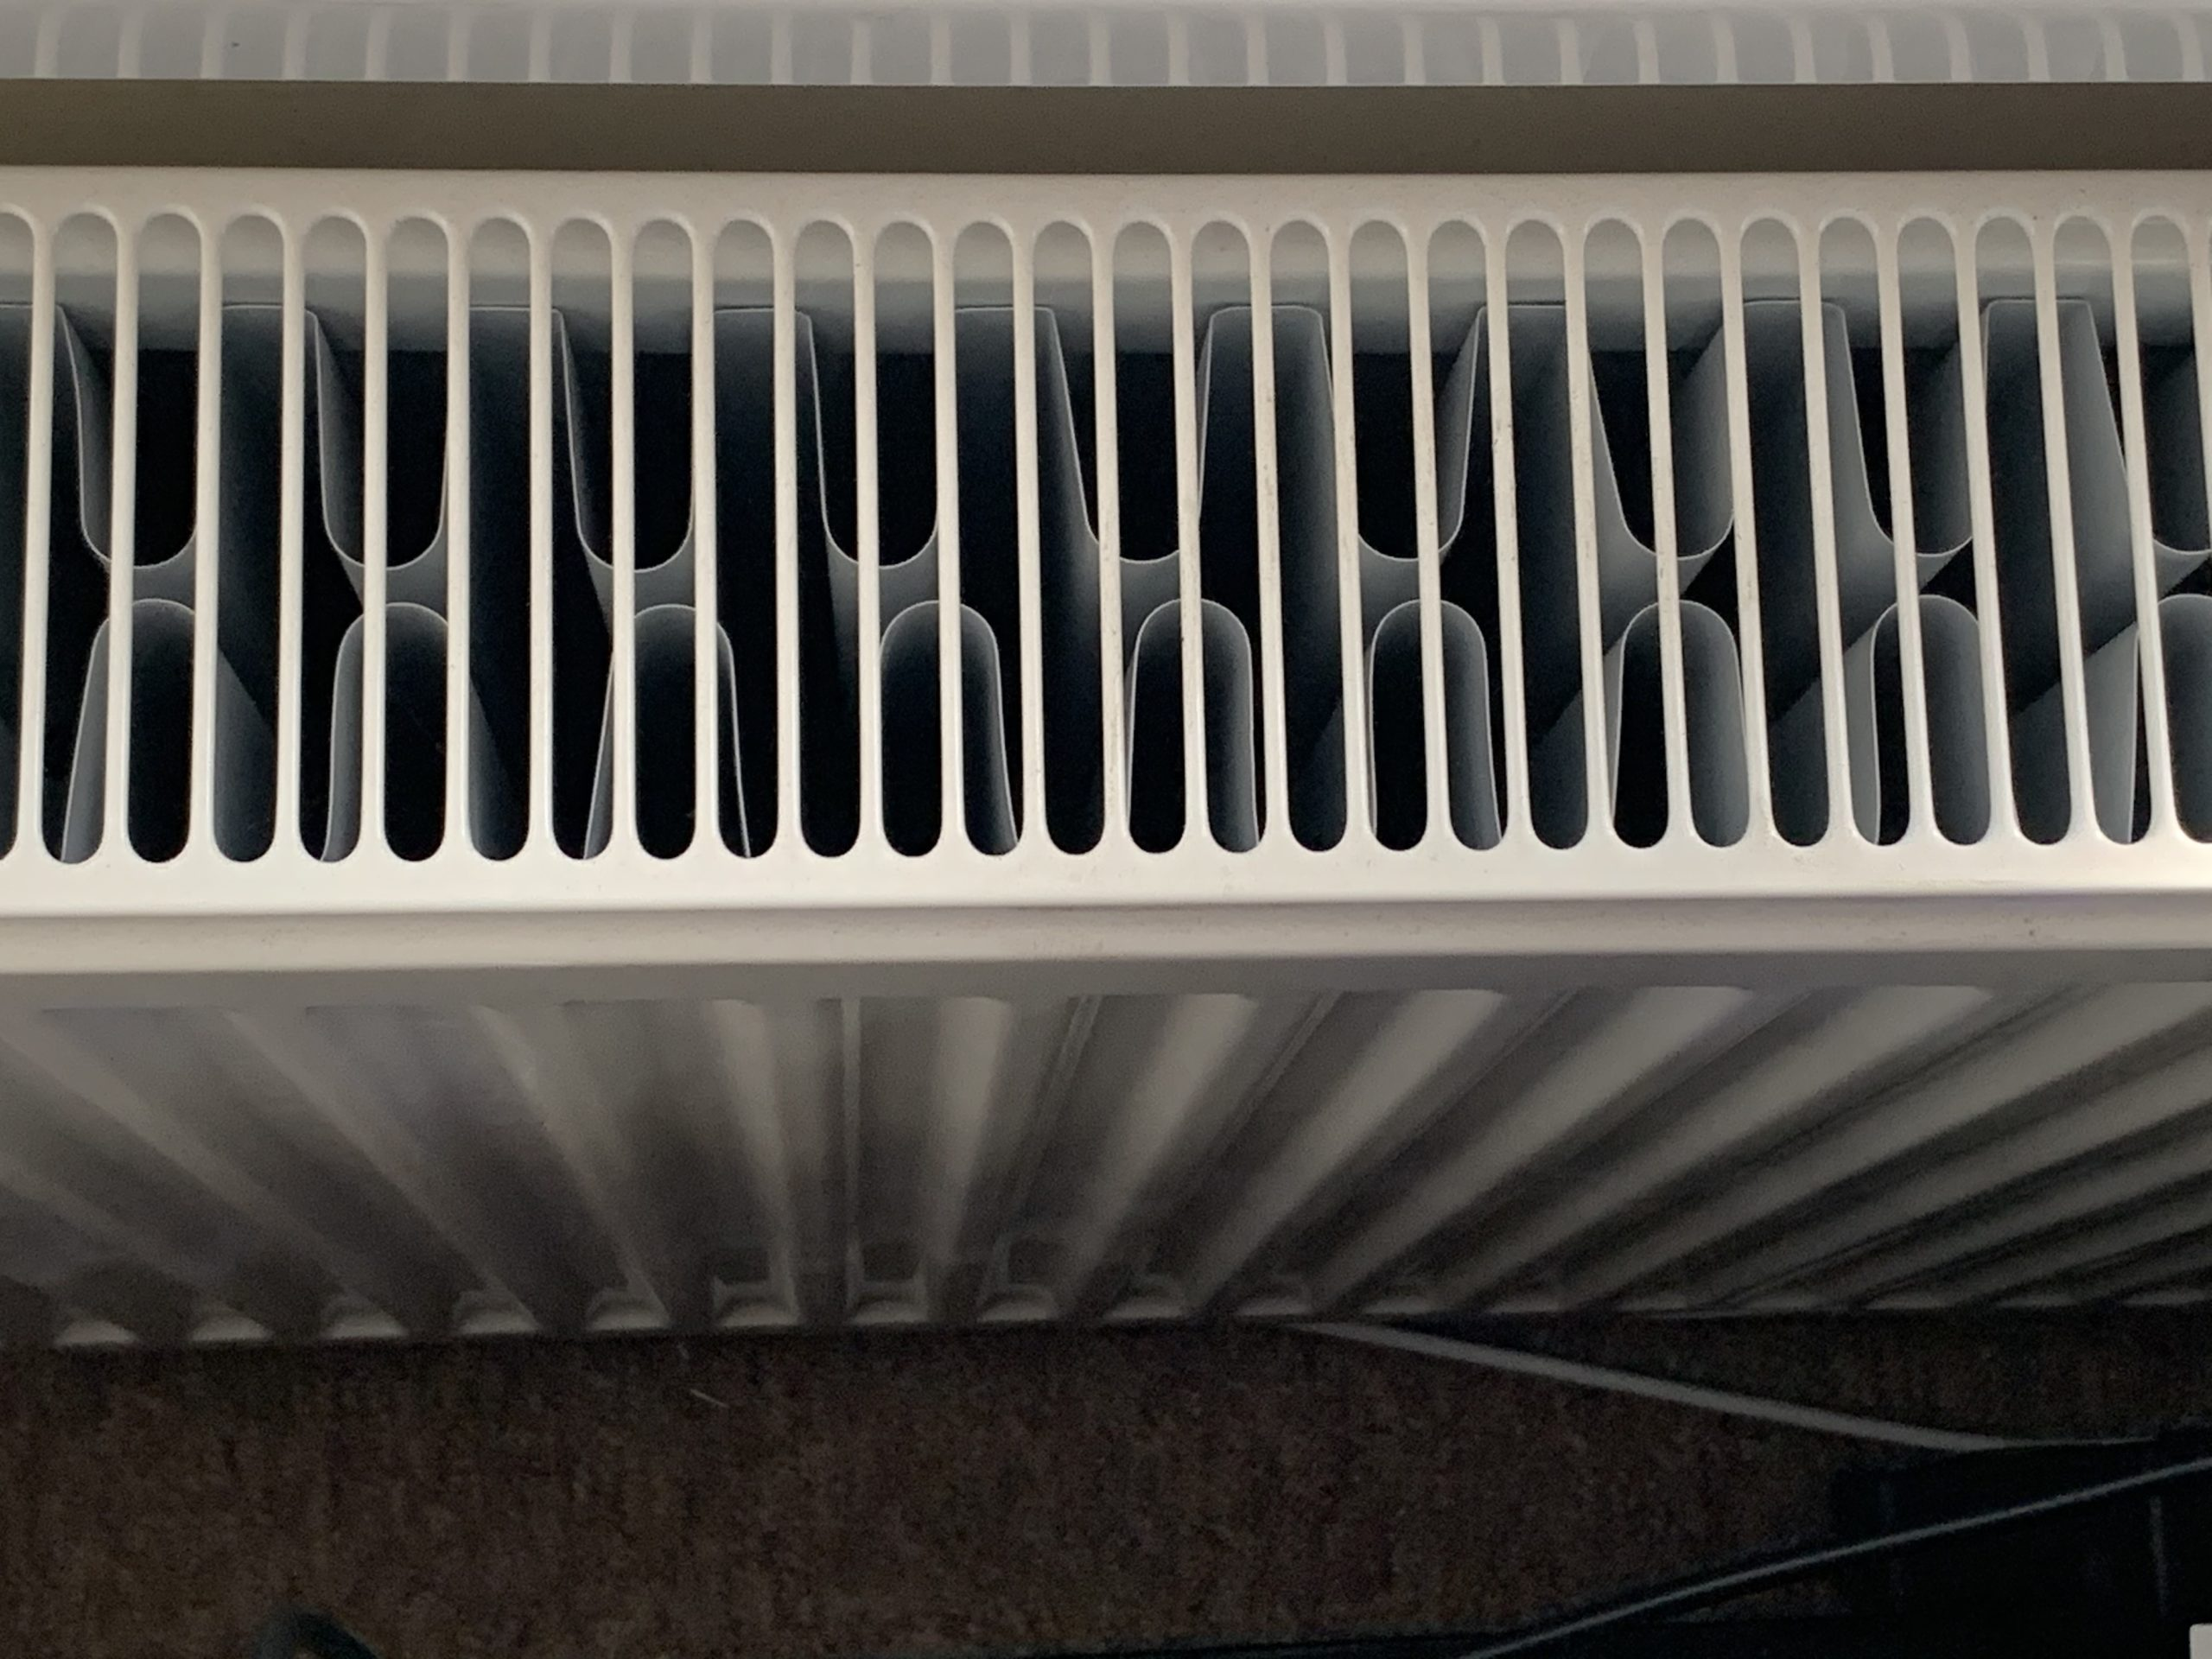 Photo showing a double convector radiator.